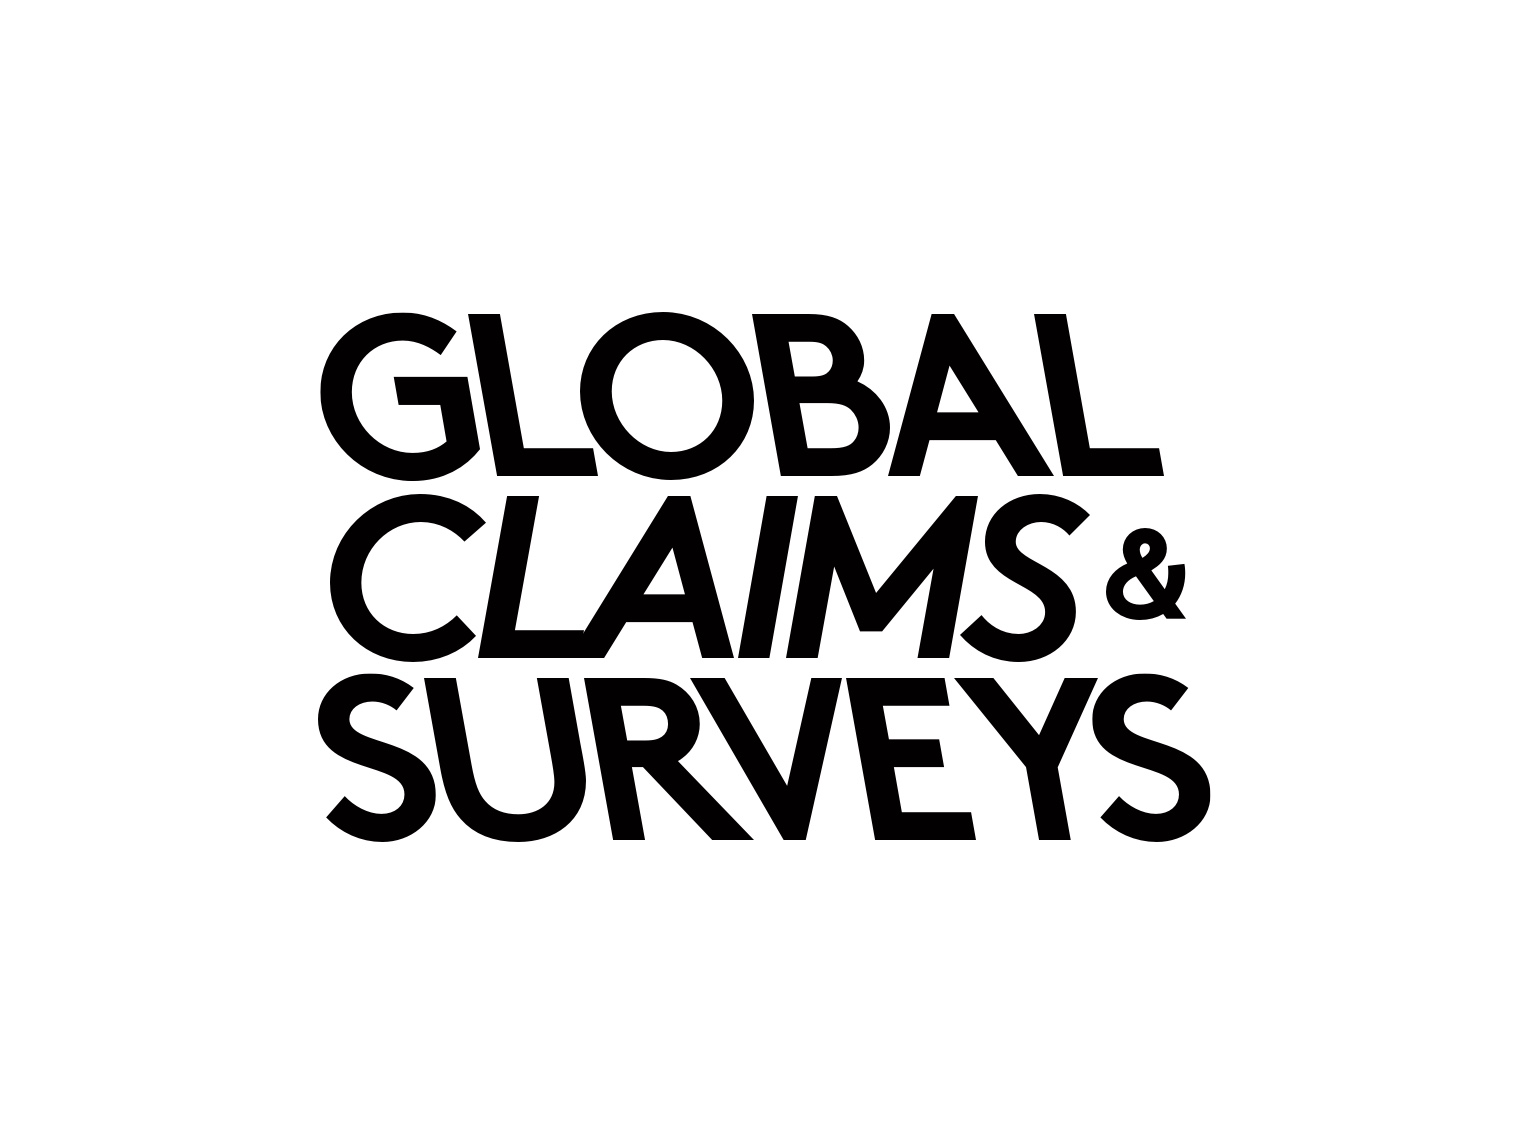 GLOBAL CLAIMS & SURVEYS / CORPORATE IDENTITY / BRANDING